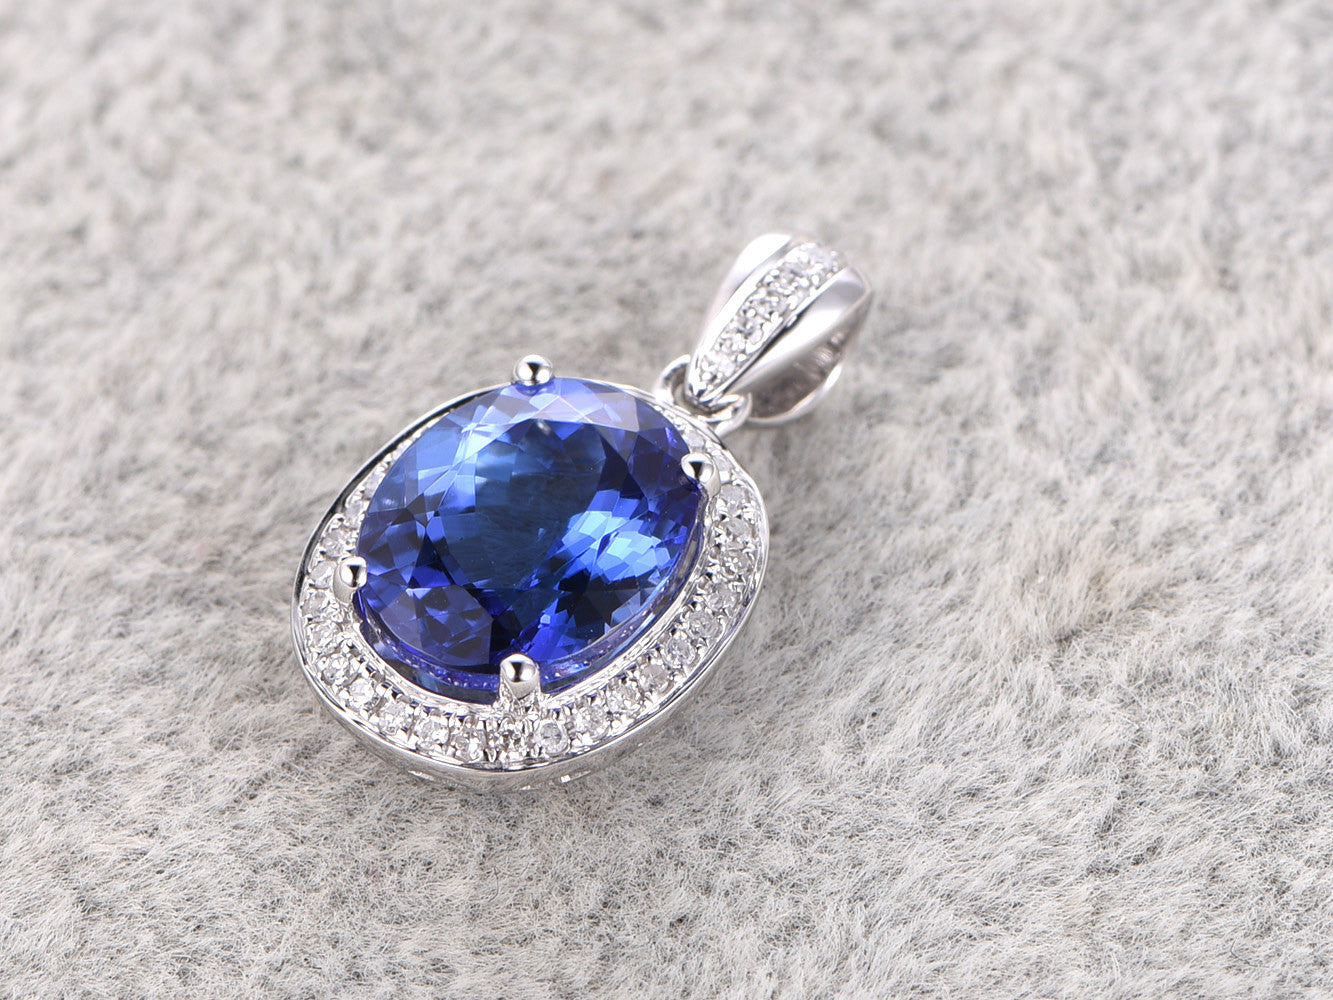 7x9mm Natural Tanzanite Pendant!Diamond 14k White gold,Halo fine design,Oval cut Blue Stone Gemstone Promise,wedding,Prong set,for necklace